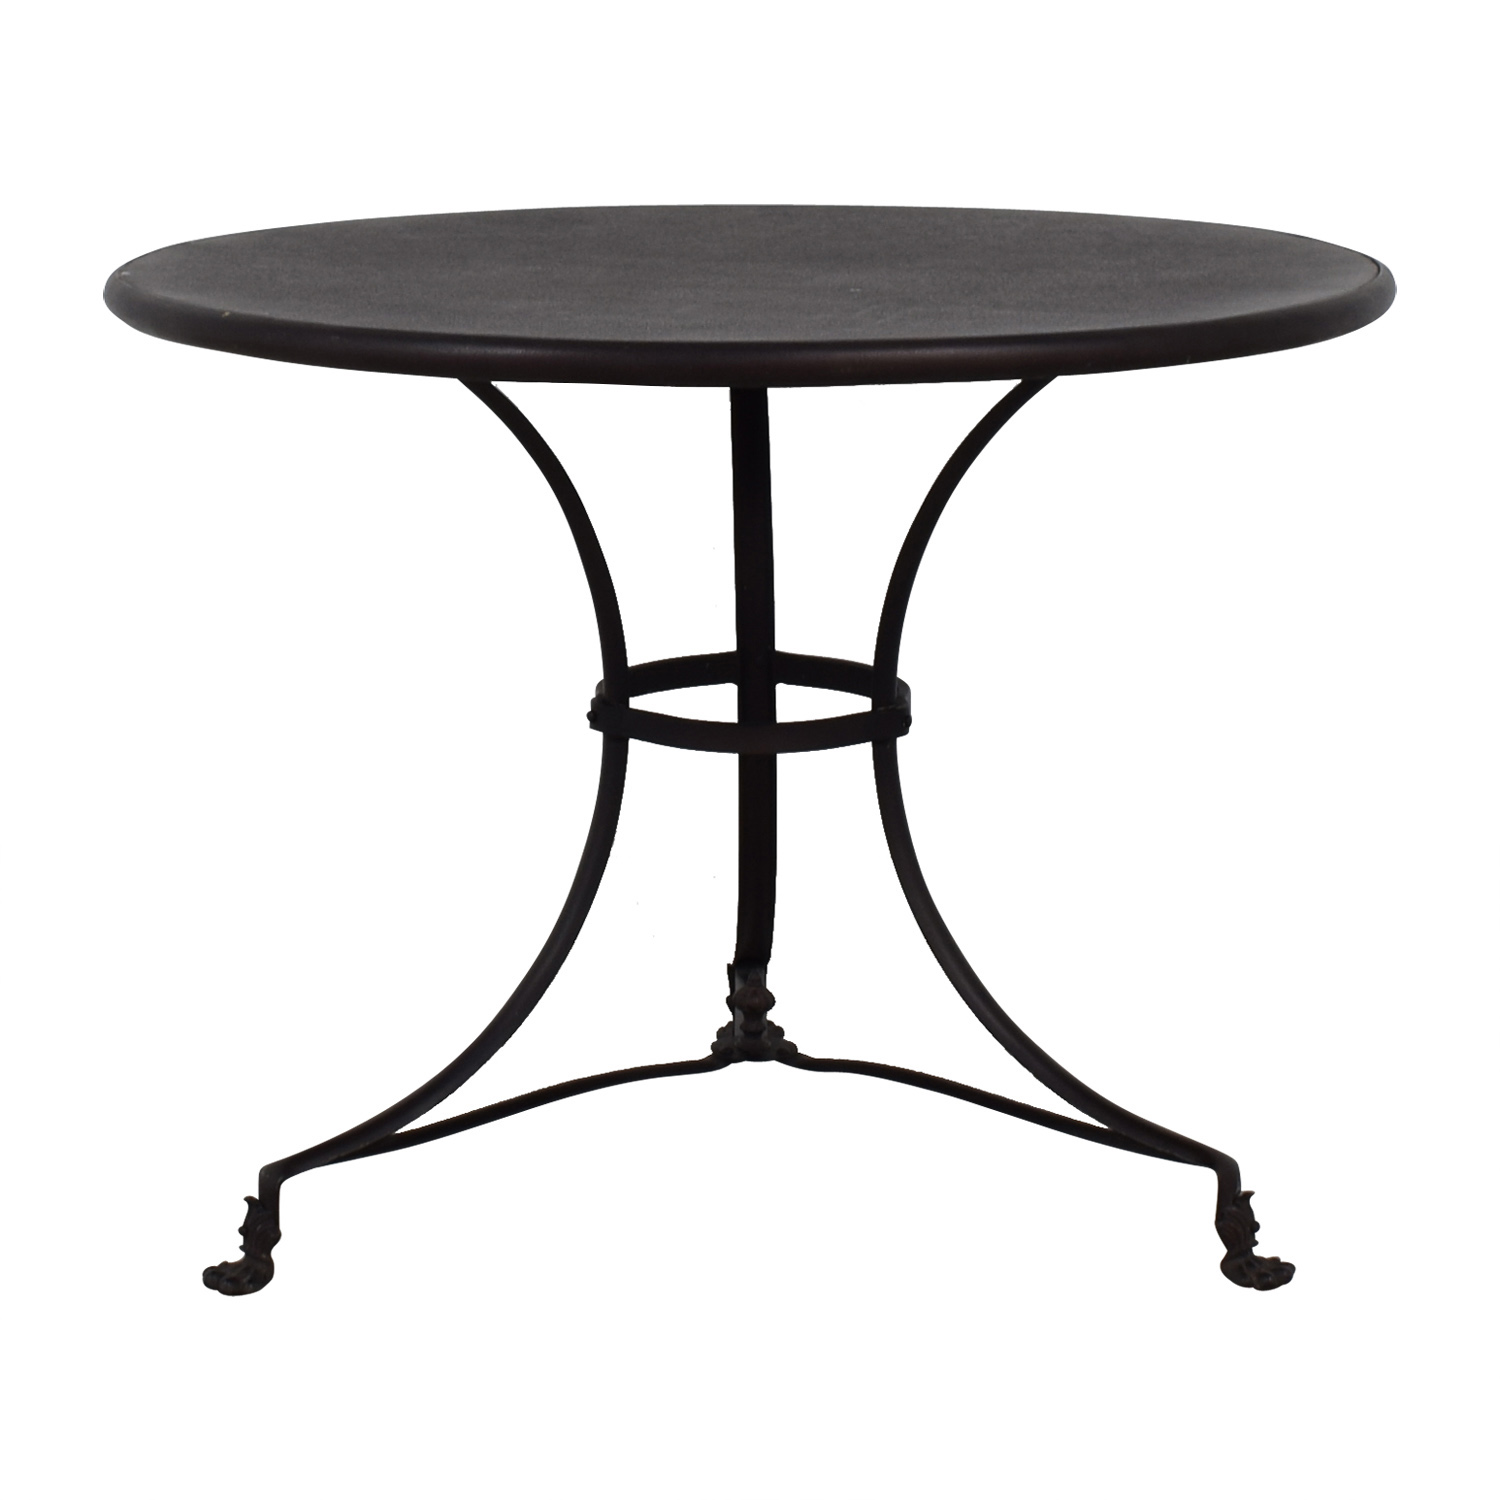 Restoration Hardware Restoration Hardware Round Wood Dining Table second hand